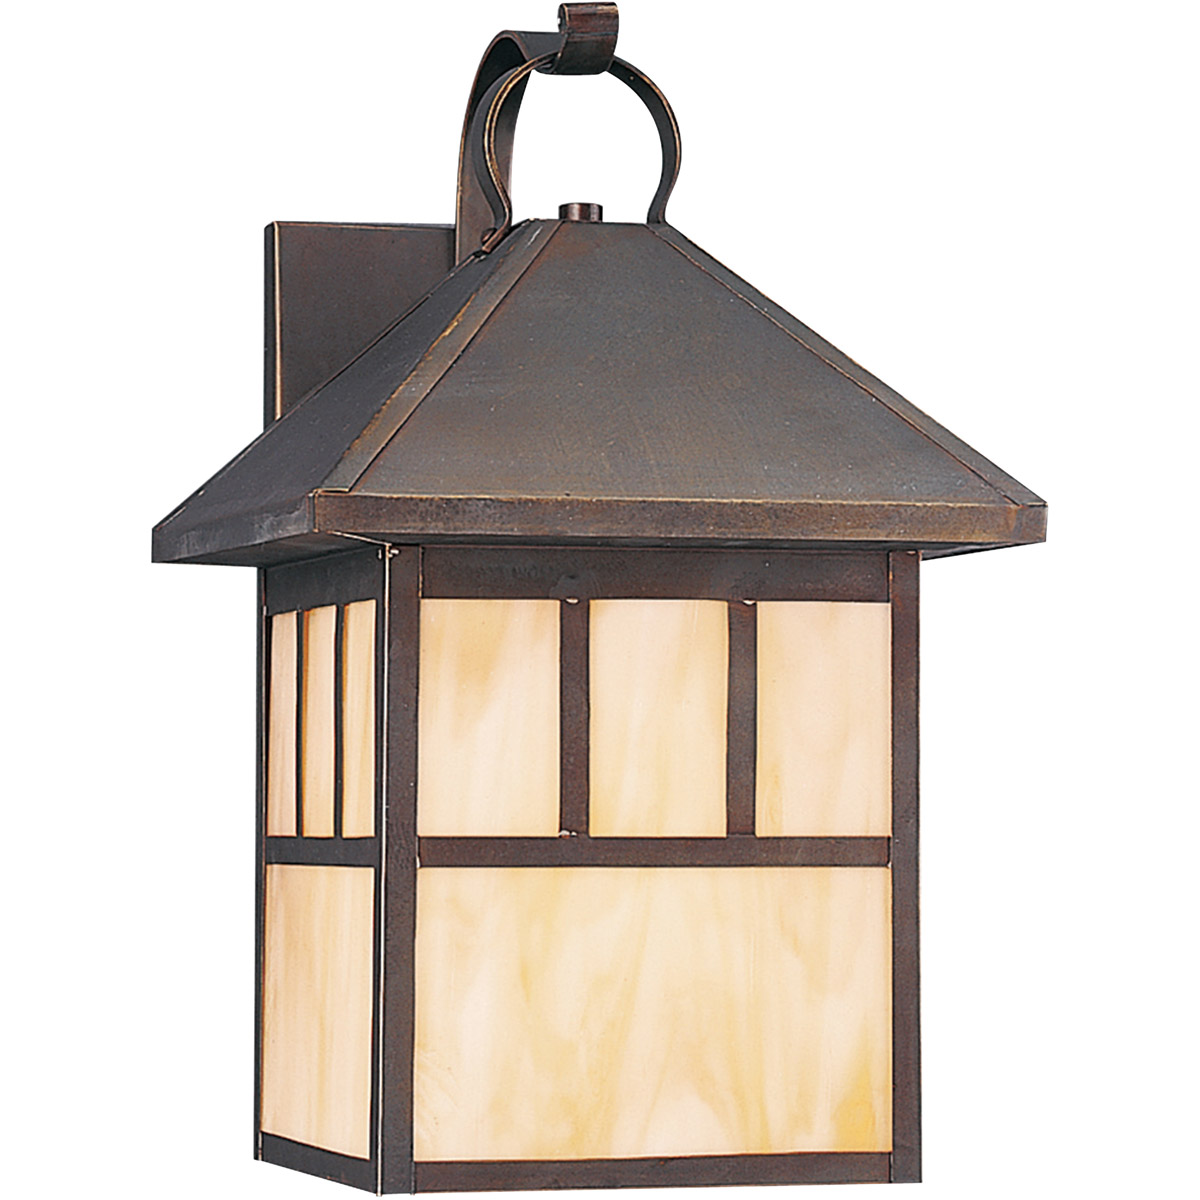 Sea Gull Lighting Prairie Statement 1 Light Outdoor Wall Lantern in Antique Bronze 8513-71